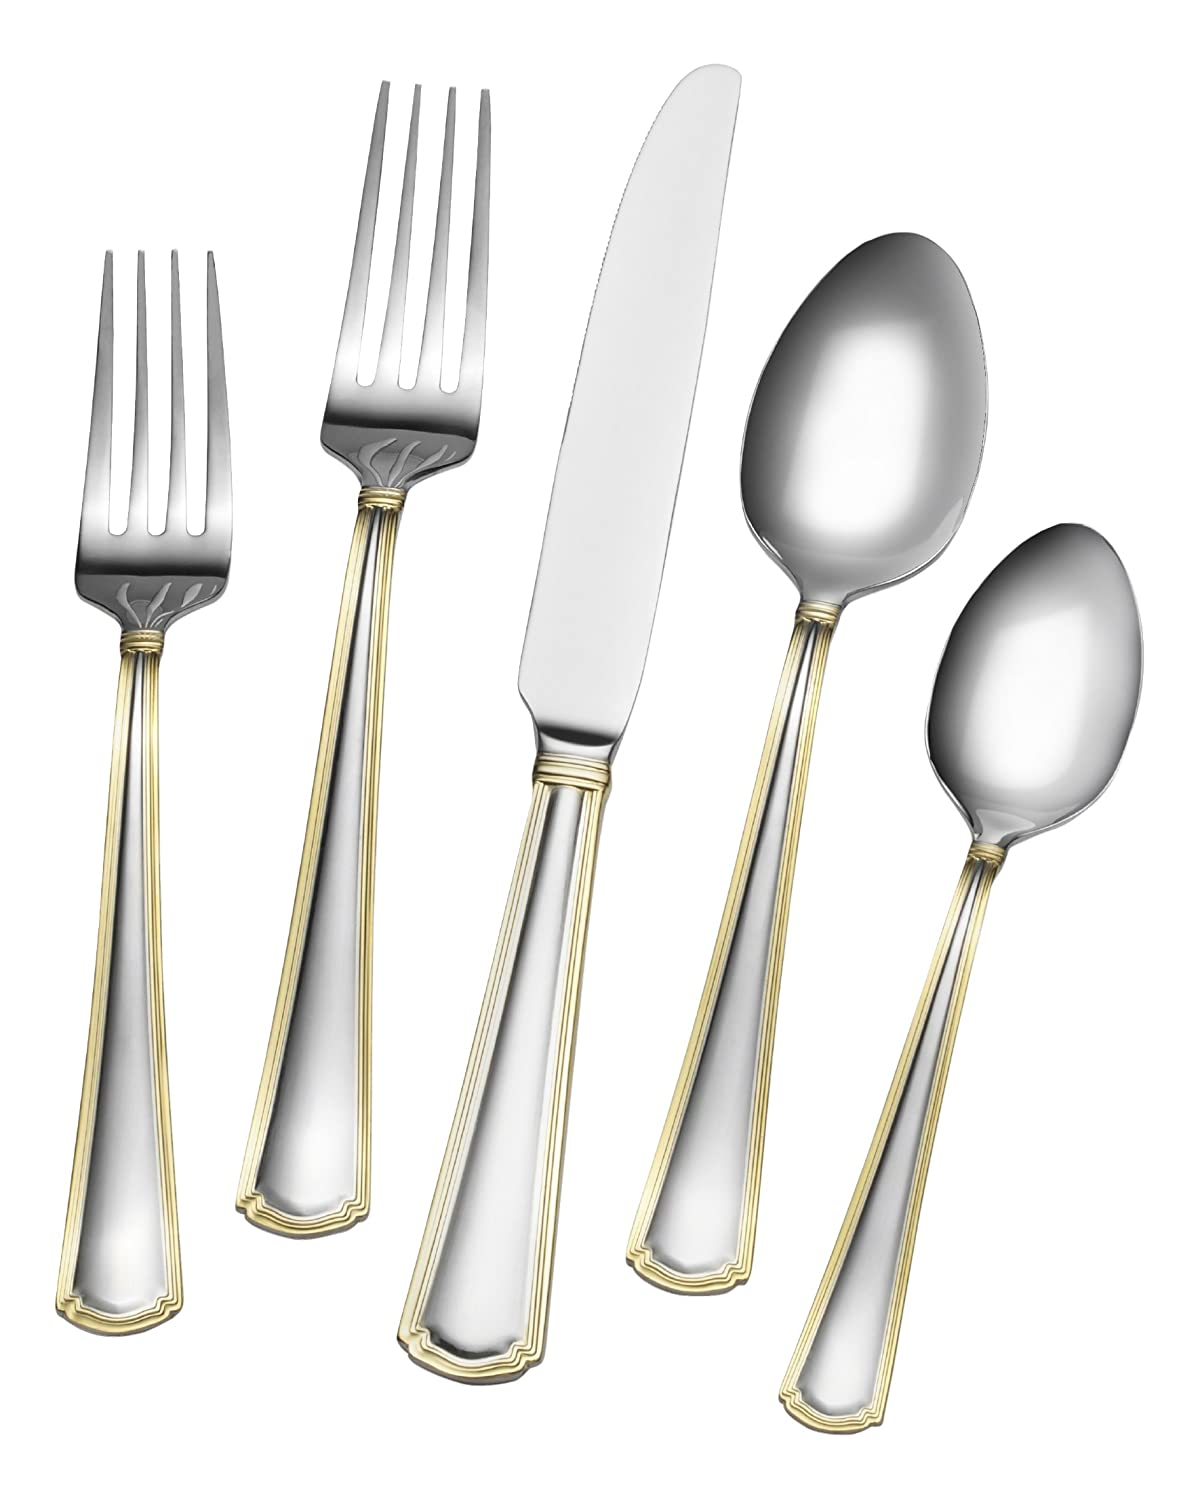 Gourmet Basics by Mikasa 5181722 Universal Flatware 20-Piece Stainless Steel Flaware Set Service for 4